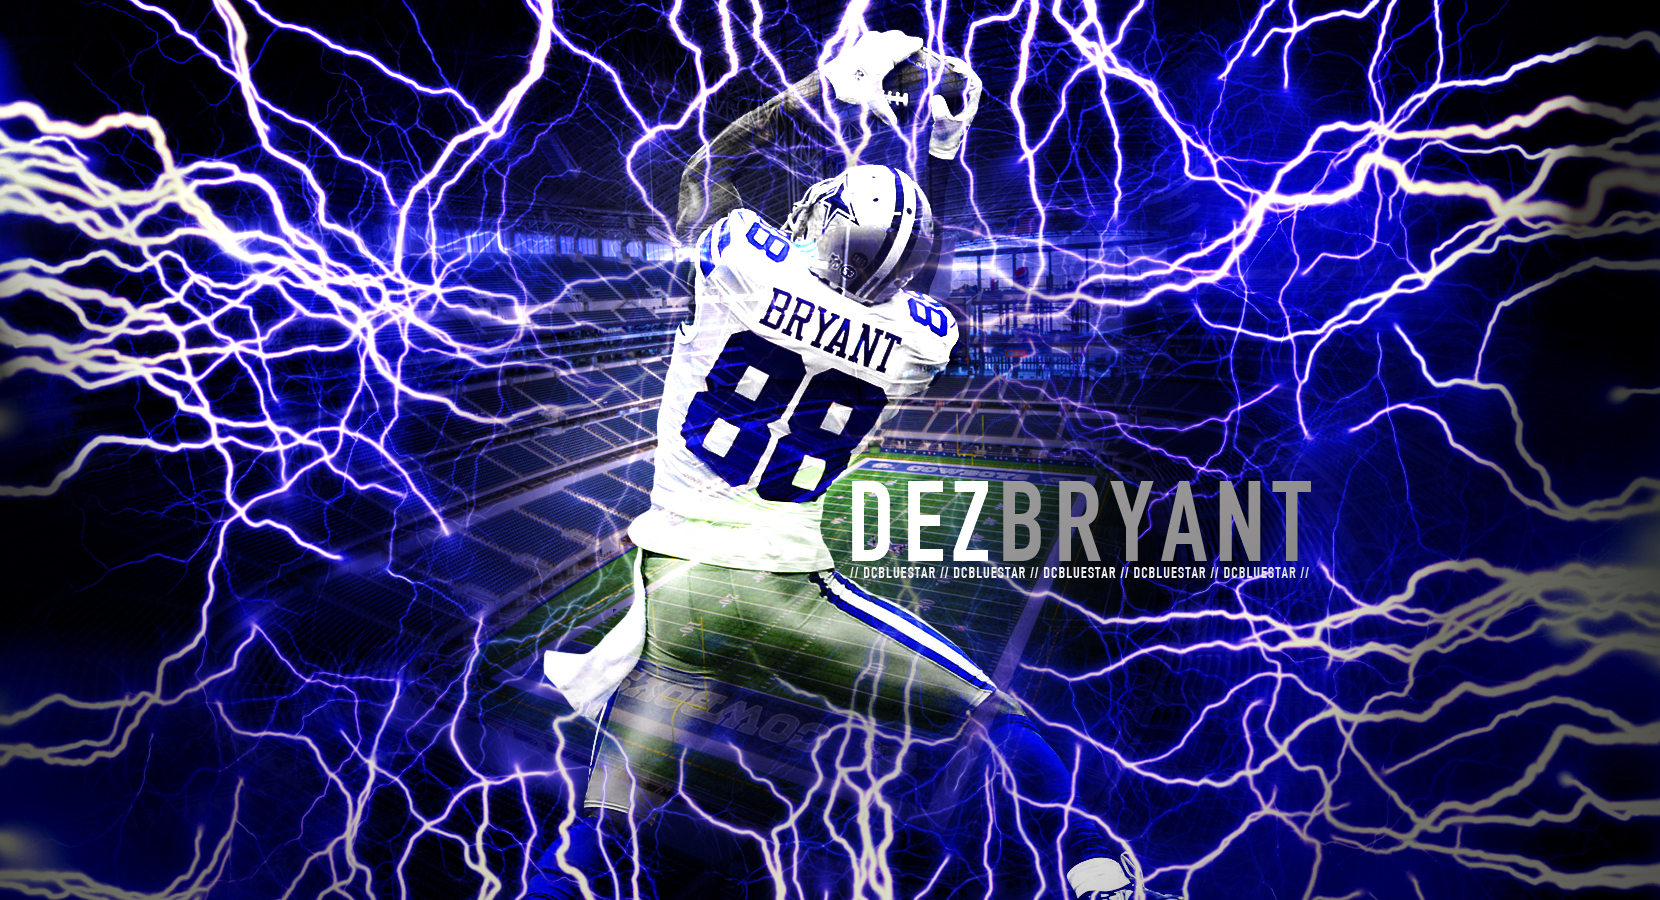 Dallas-Cowboys-Fan-Art-Dallas-Cowboys-Forum-Dallas-Cowboys-Fan-Forum-wallpaper-wp5006526